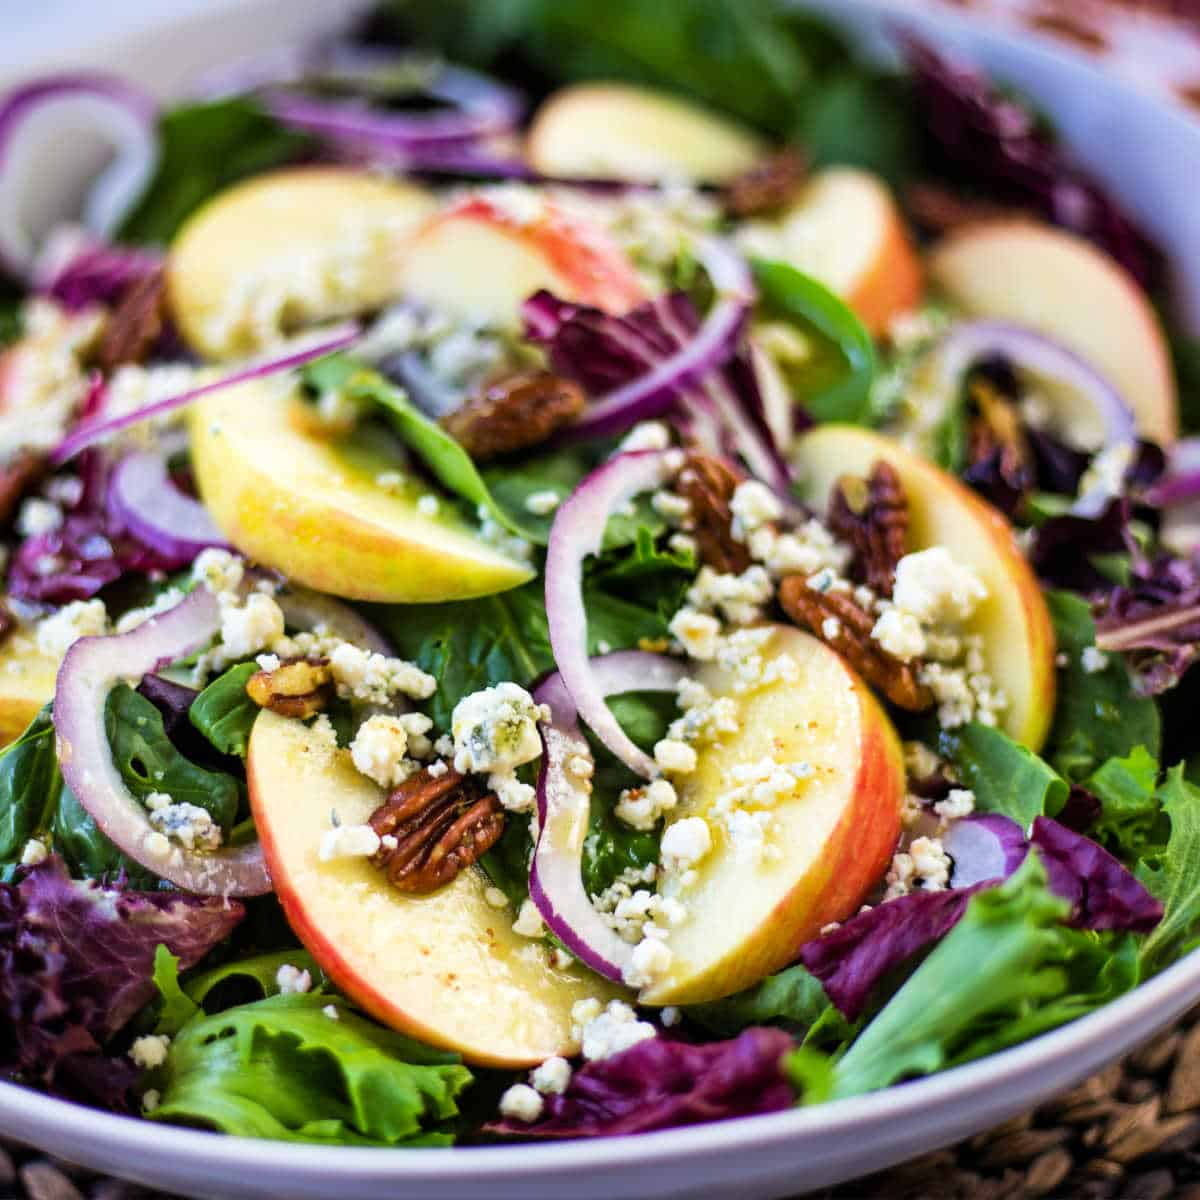 a winter salad of apples, red onions, walnuts, and blue cheese